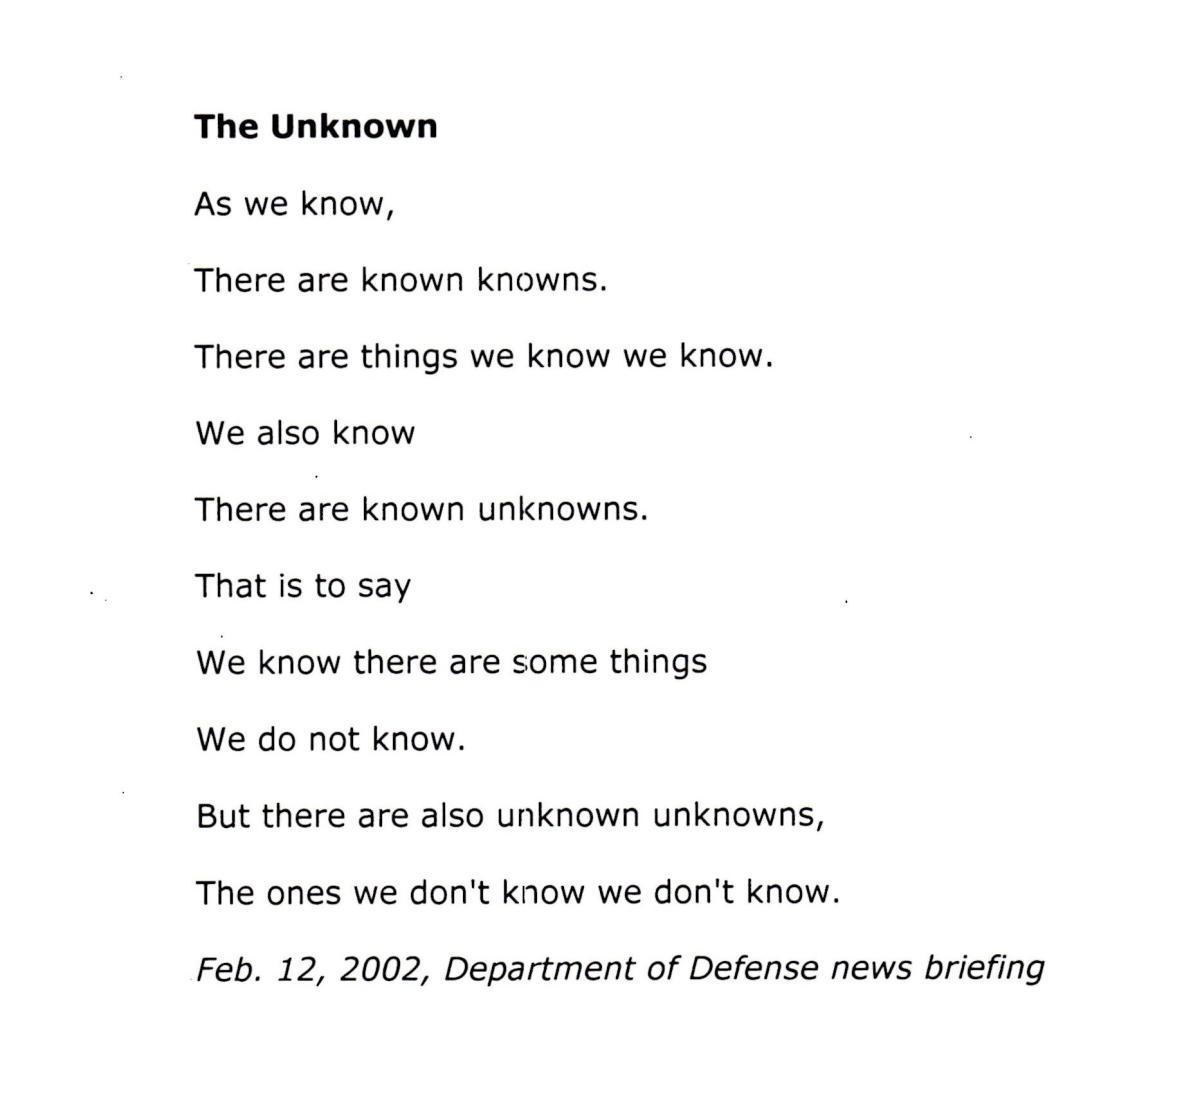 An exam0ple of found poetry taken from Donald Rumsfeld's speeches.